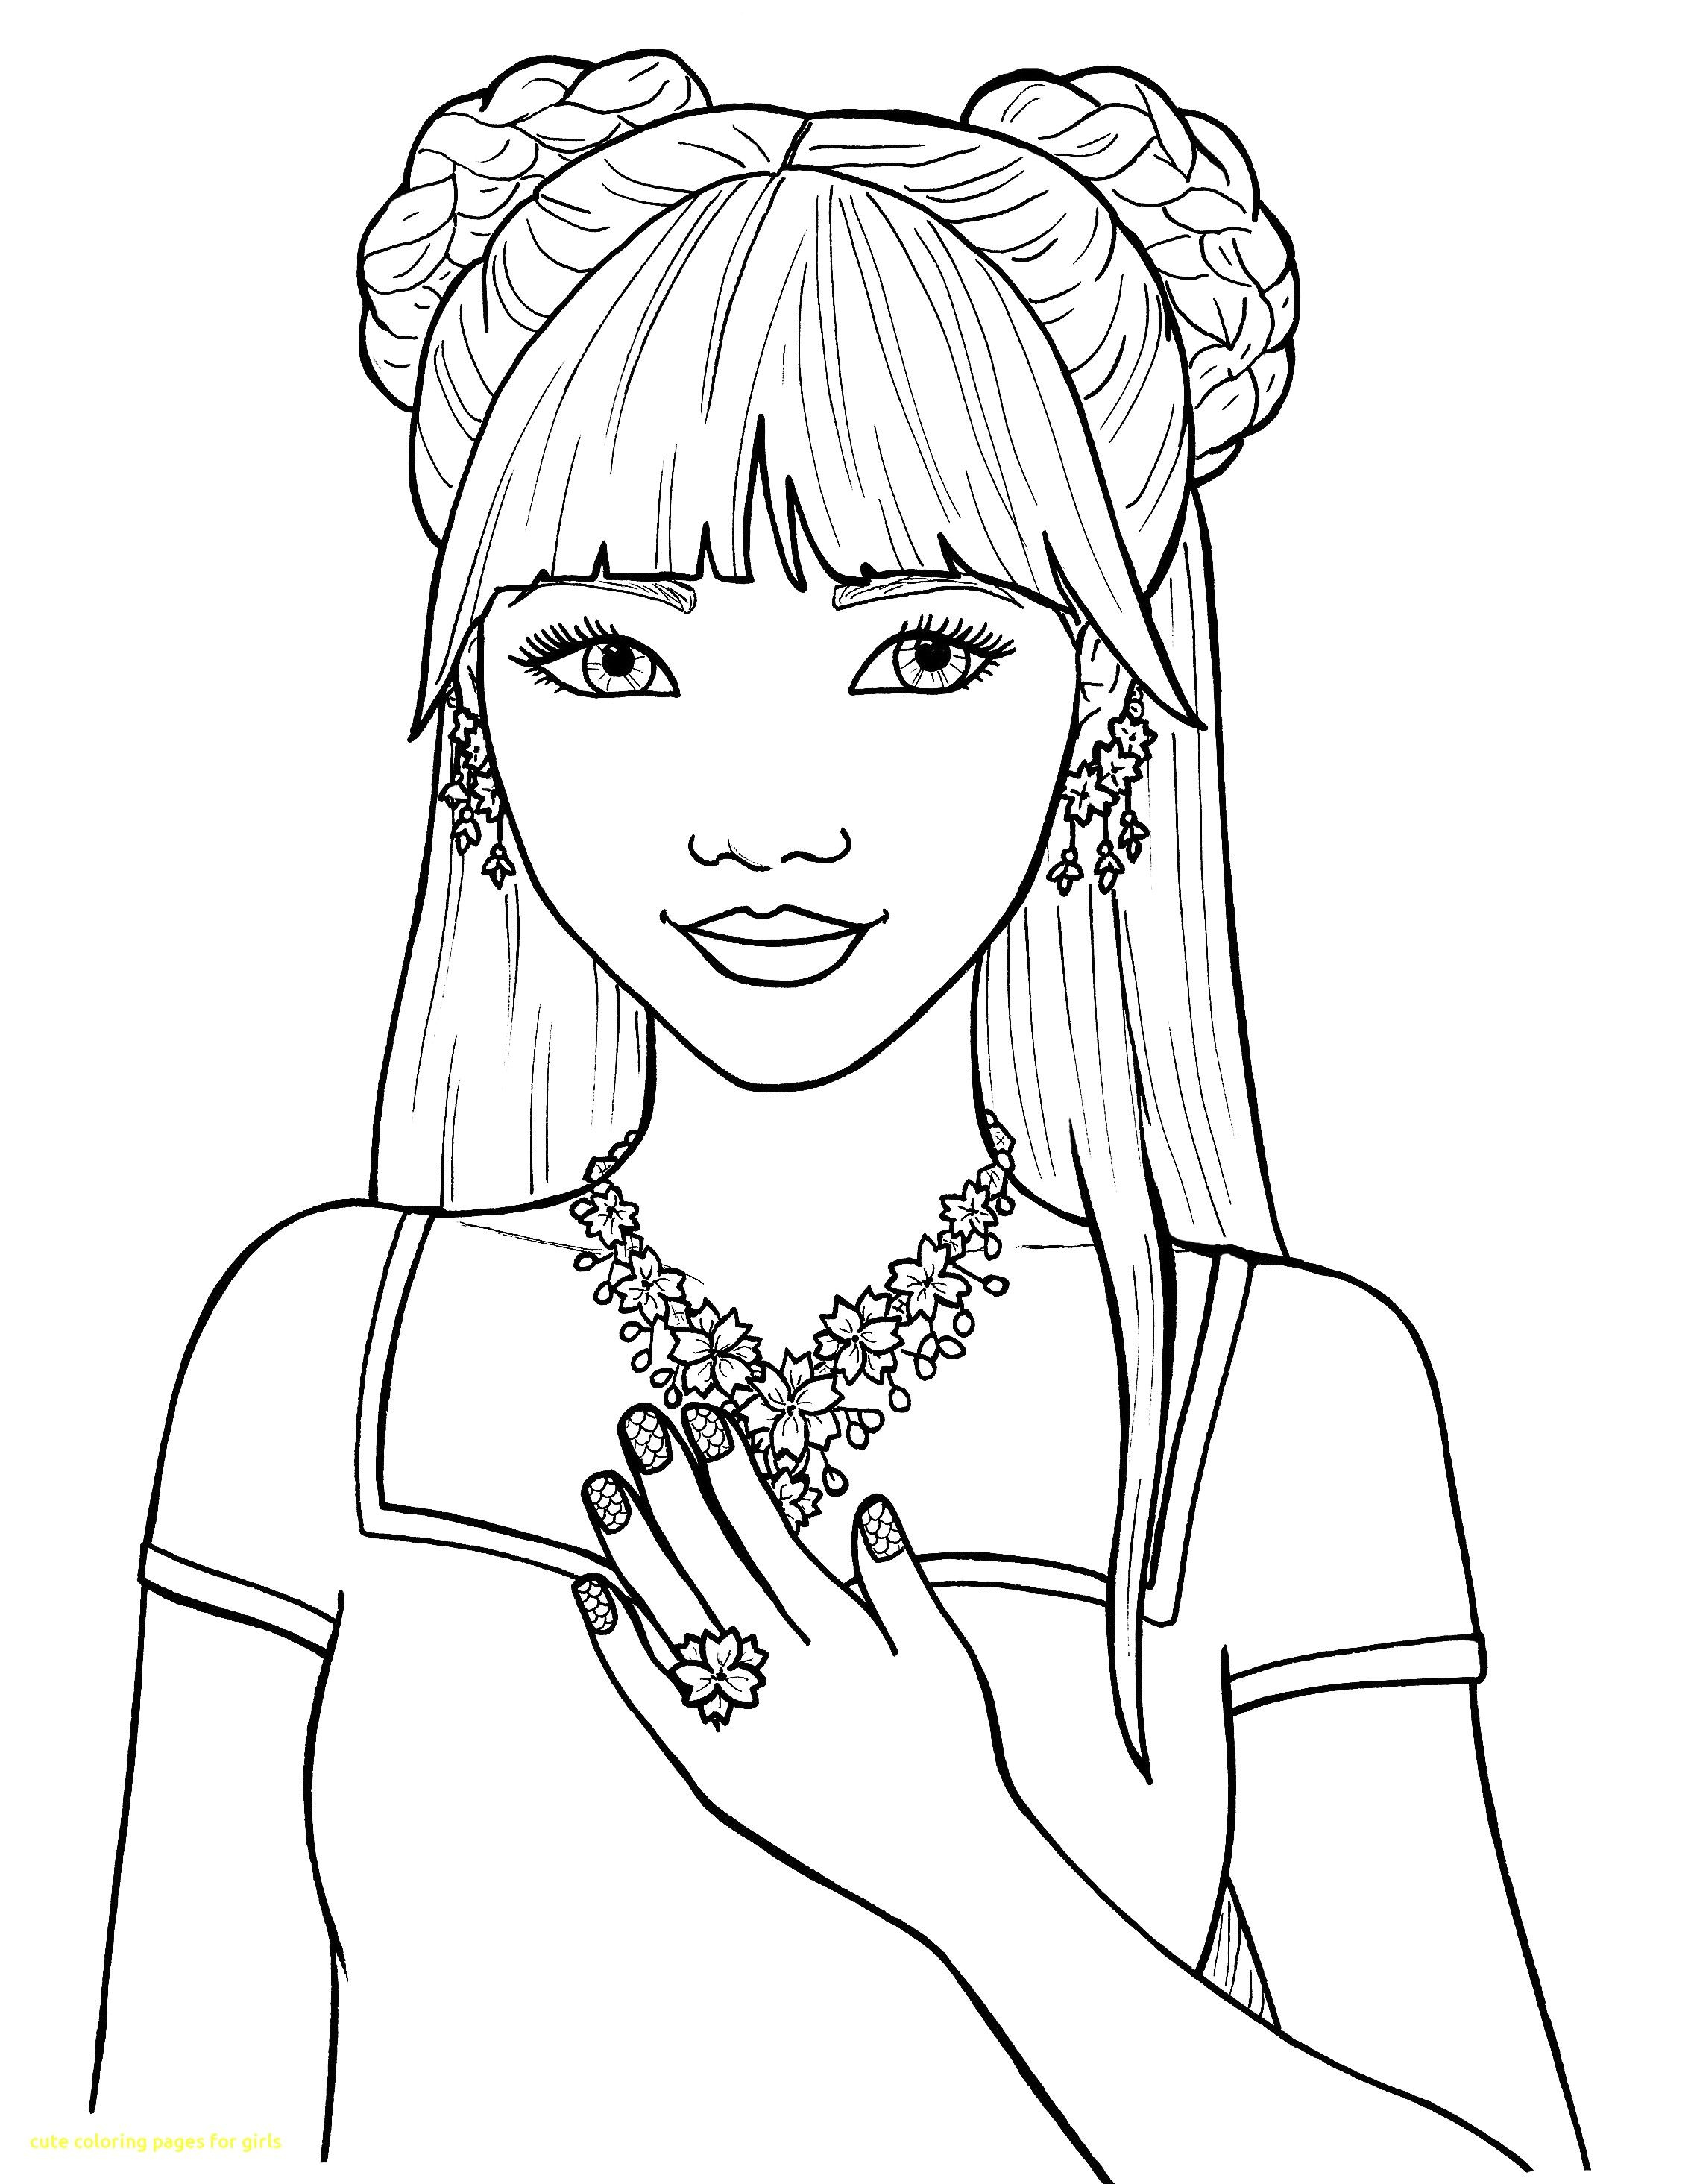 Girl Color Pages Coloring Pages Coloring Pages Cute For Girls With Of Inside Teens